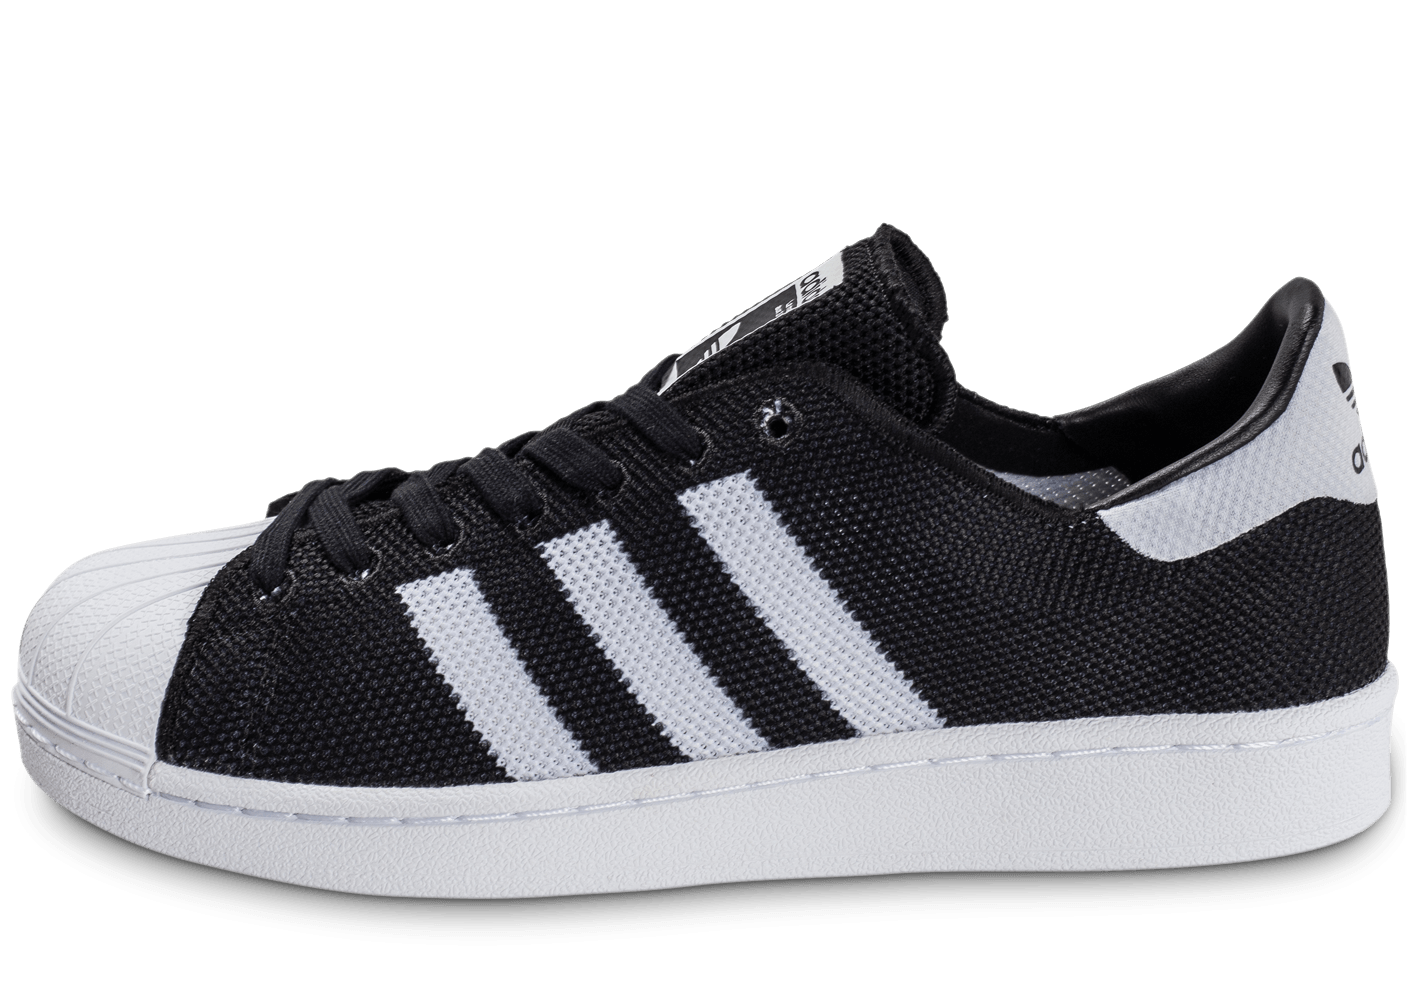 adidas superstars noir